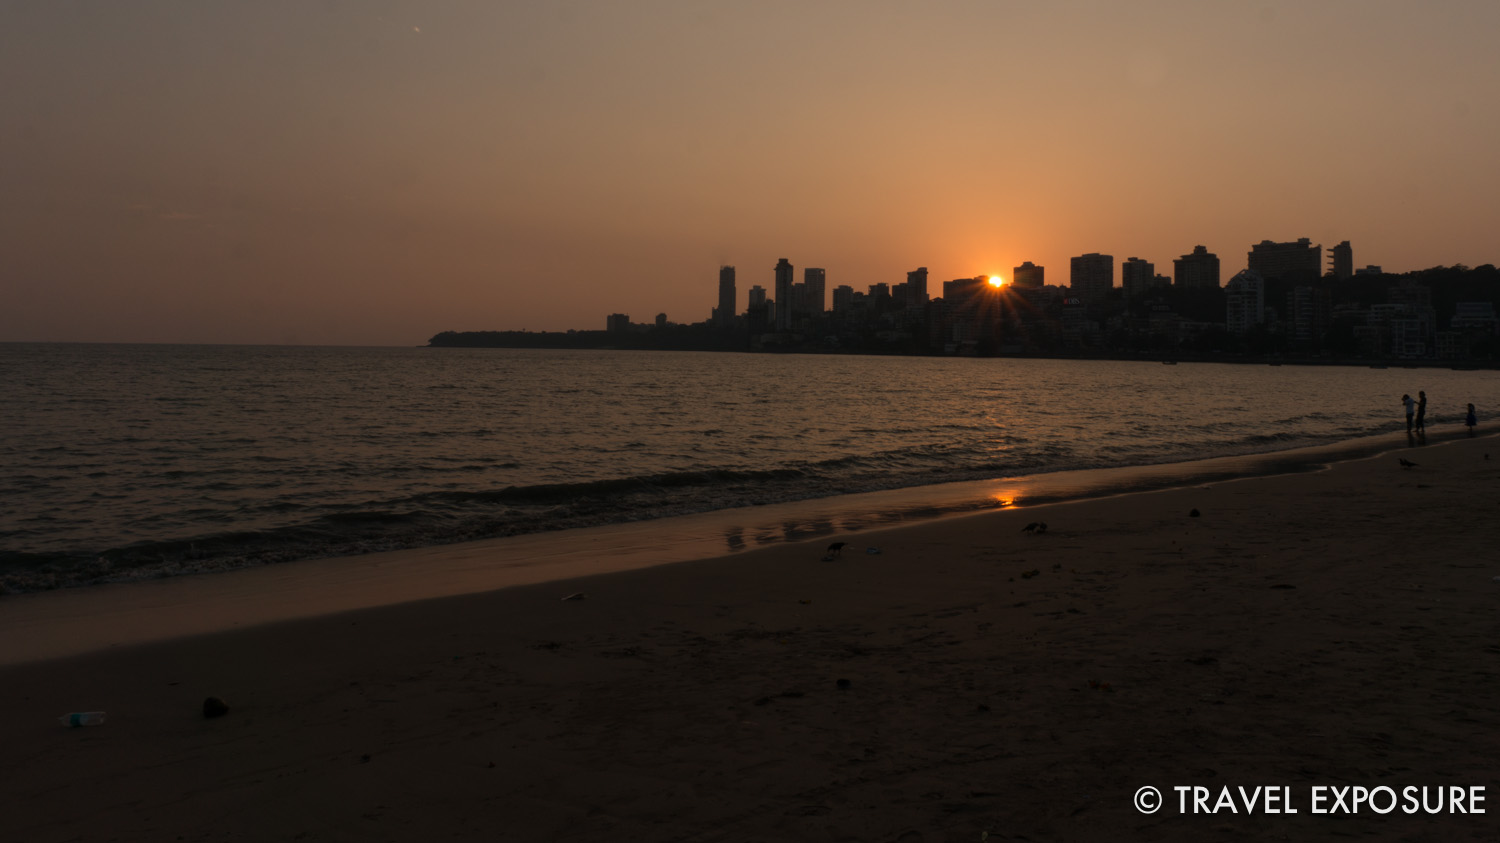 Sunset at Chowpatty Beach in Mumbai